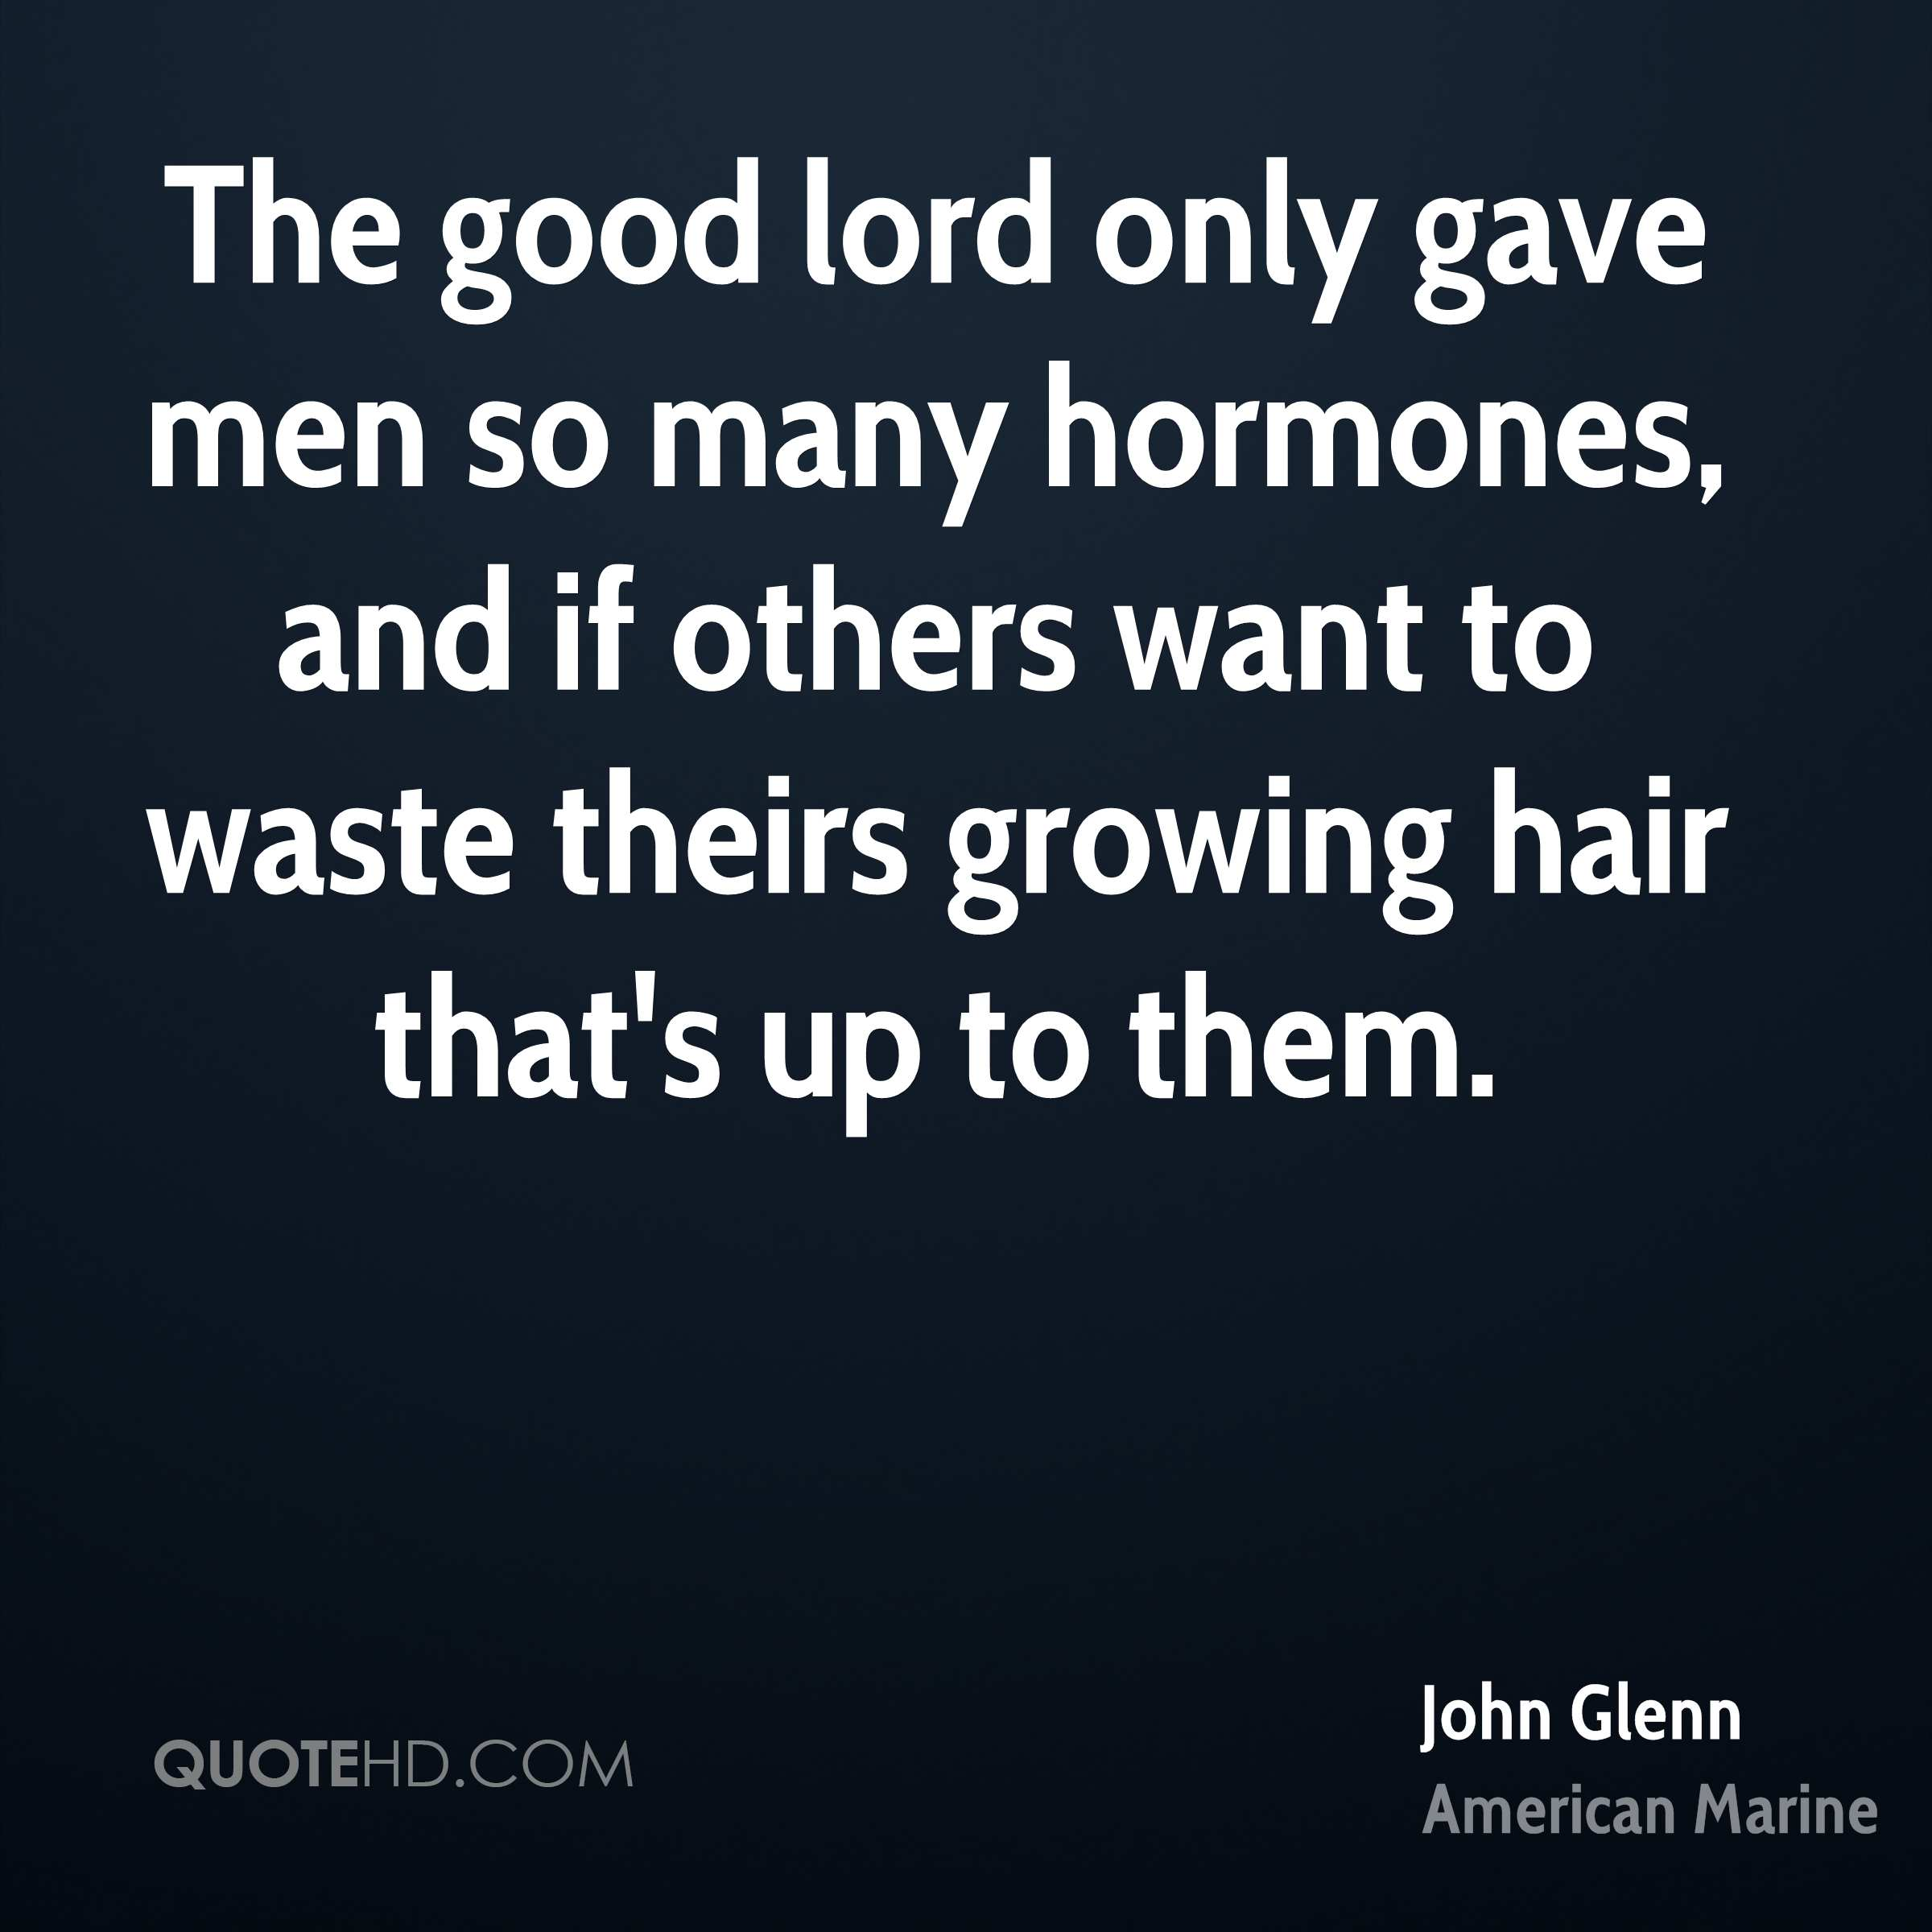 The good lord only gave men so many hormones, and if others want to waste theirs growing hair that's up to them.